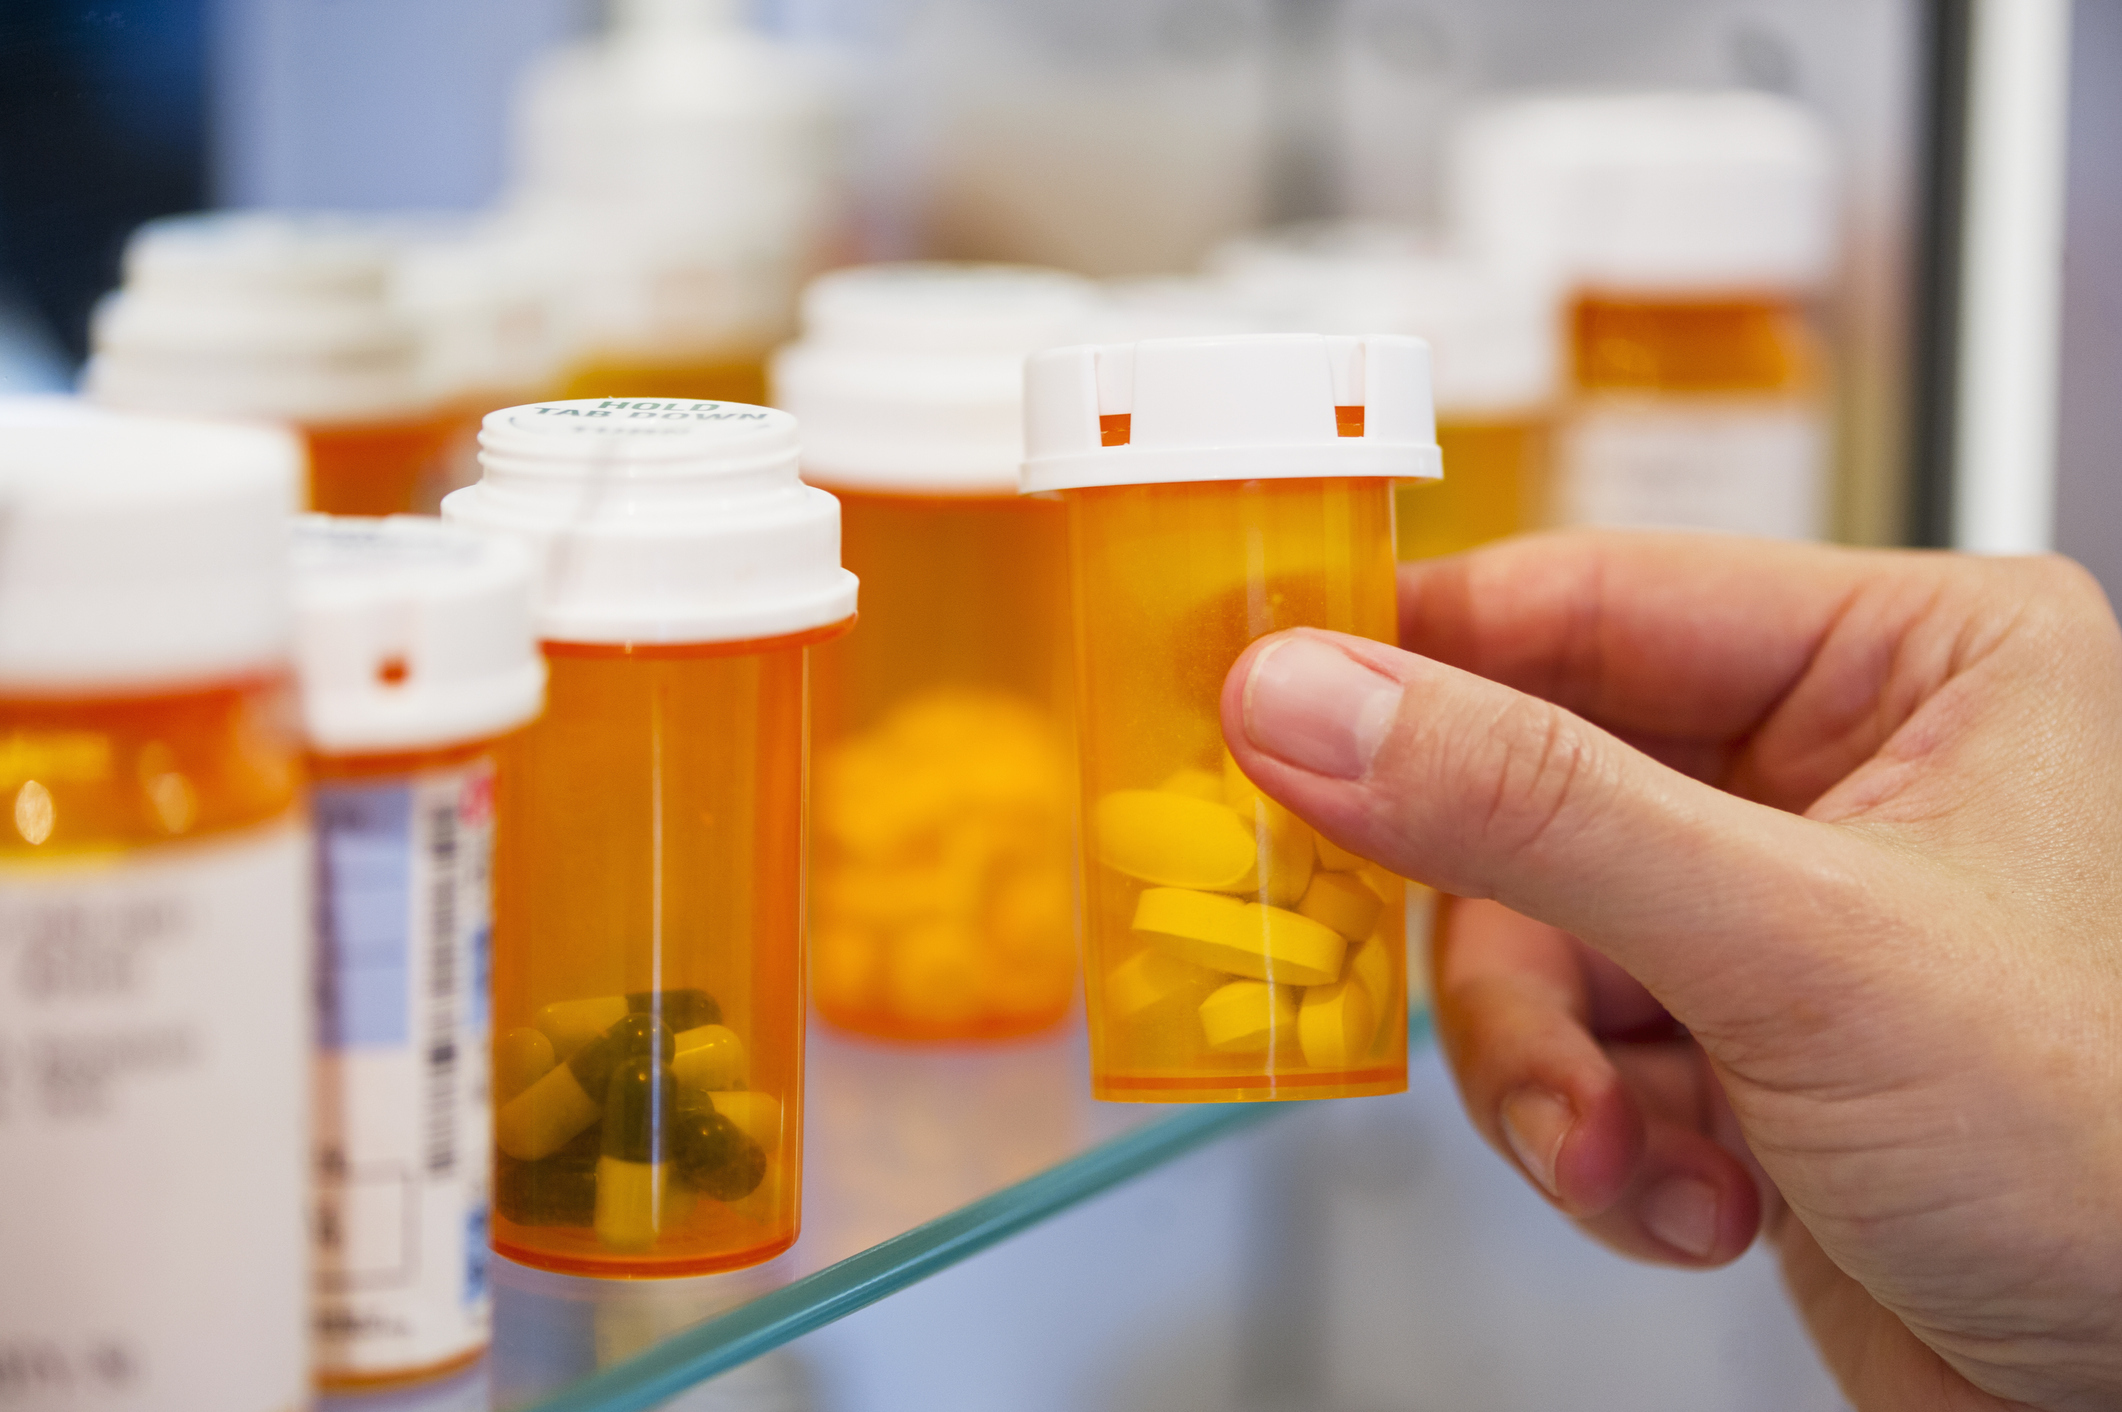 Federal Judge Orders Release Of Dataset Showing Drug Industry's Role In Opioid Crisis